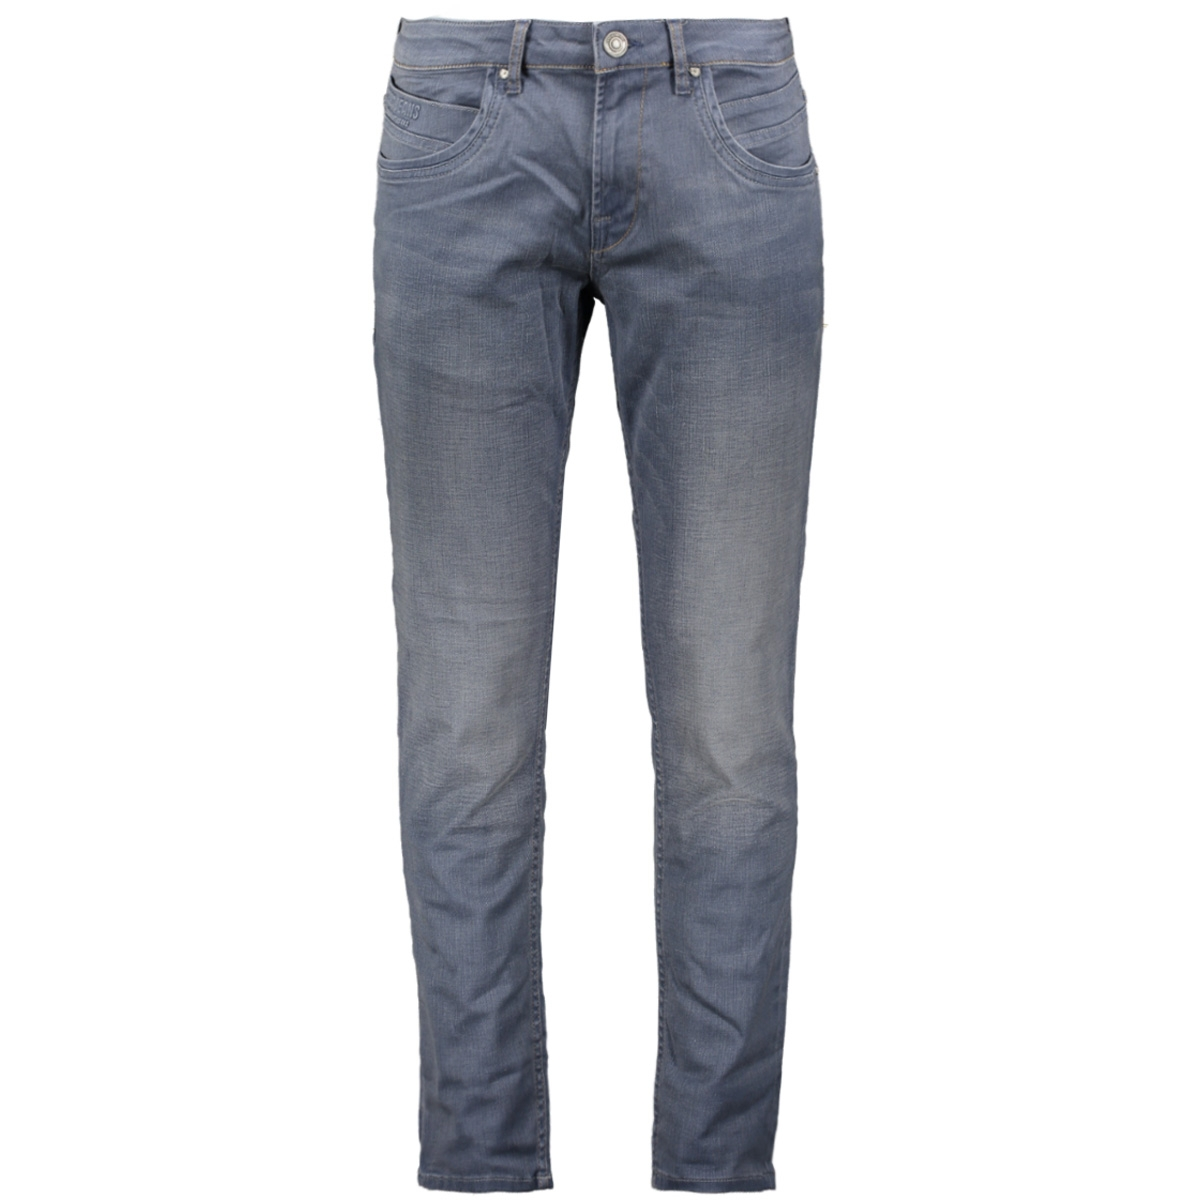 henlow regular coated 7673885 cars jeans grey blue